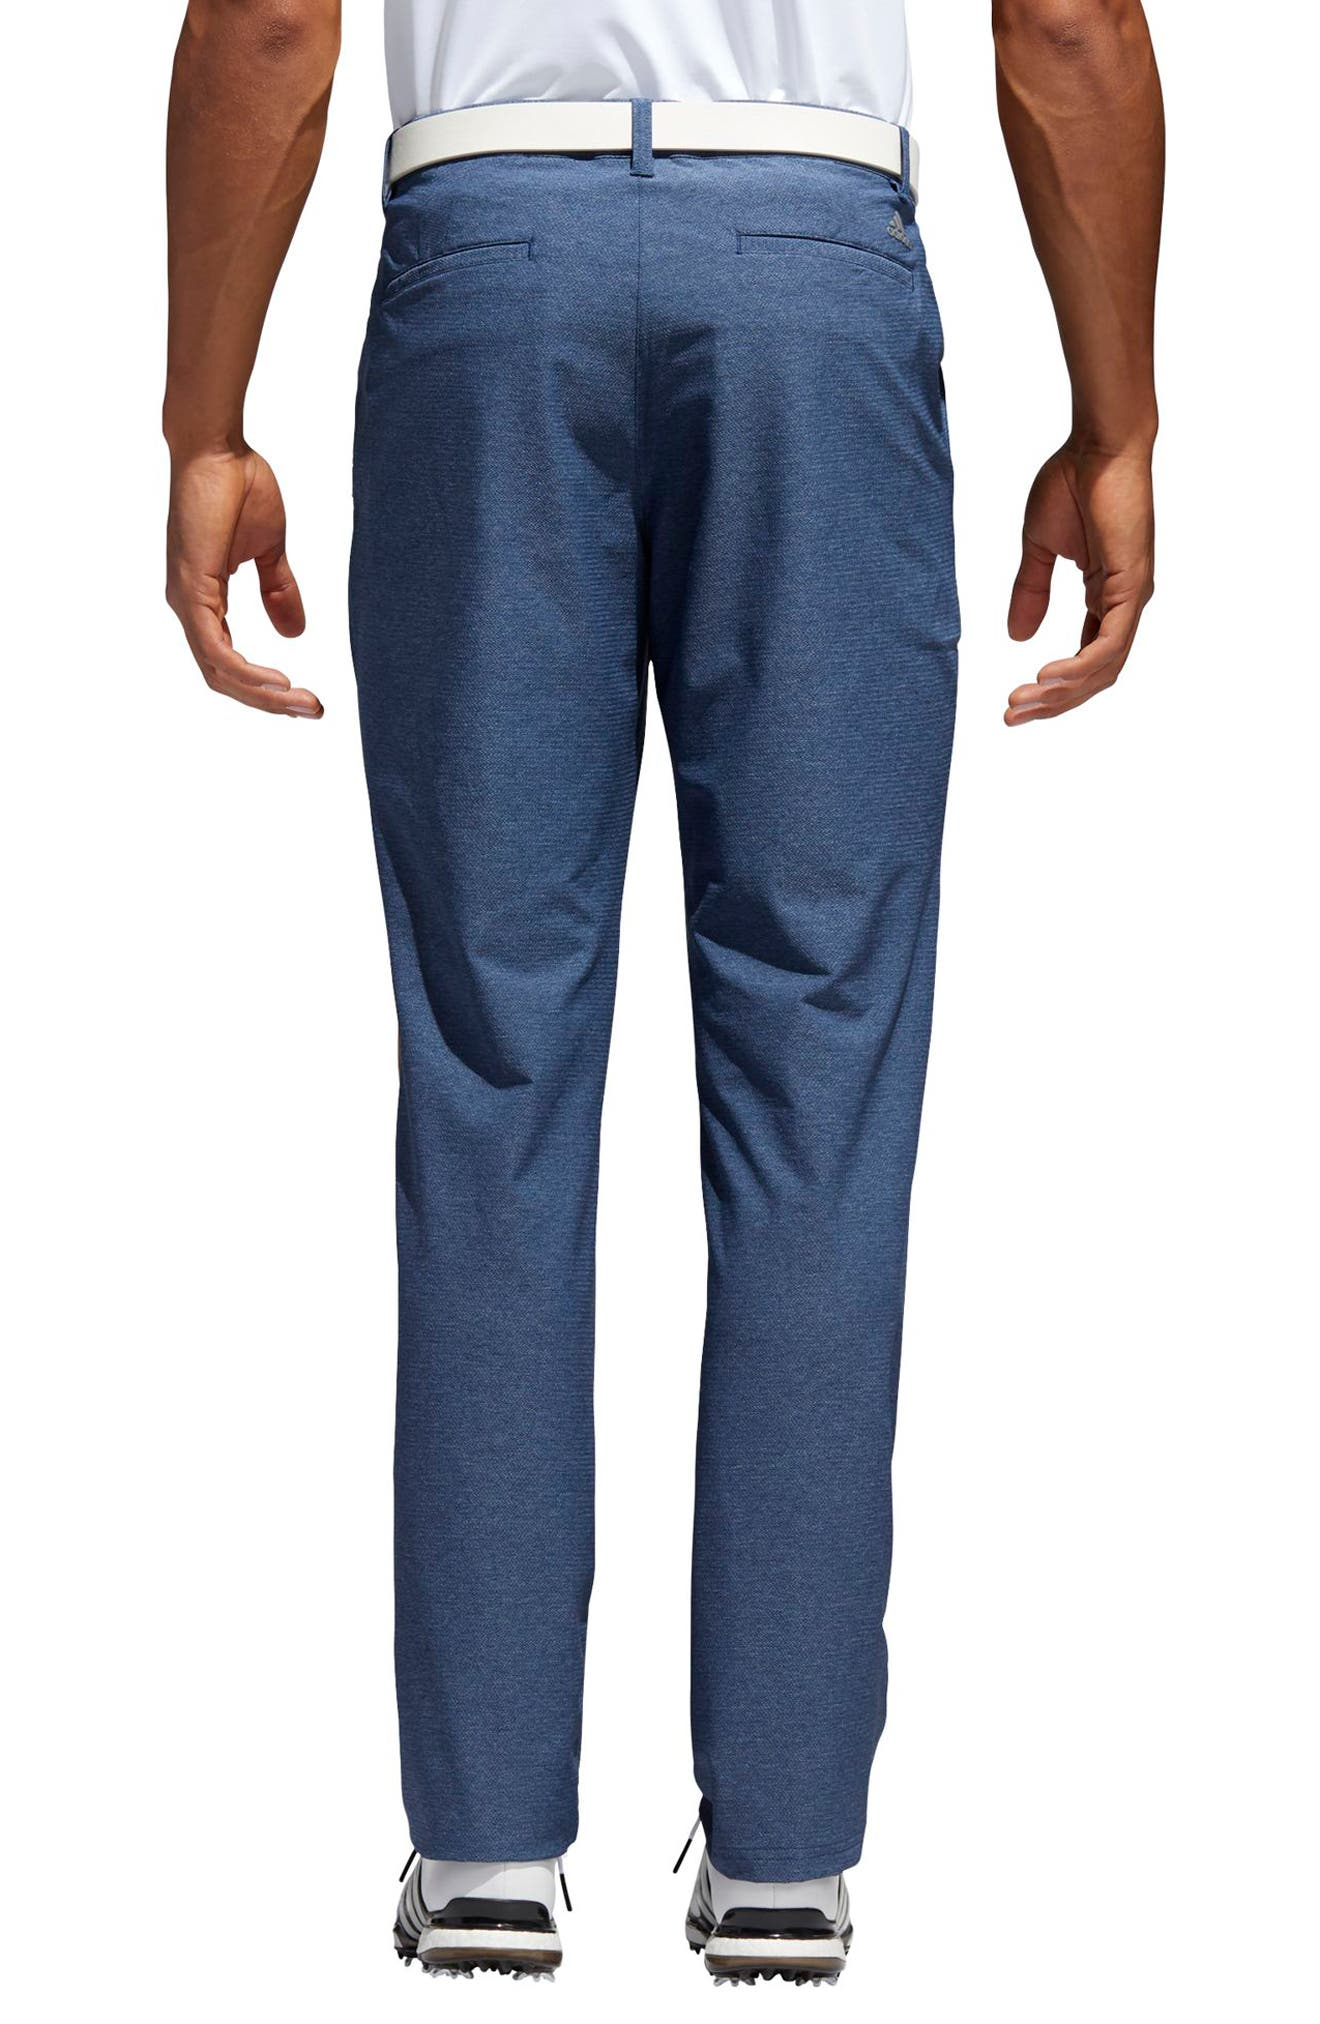 Verst Twill Crosshatch Pants,                             Alternate thumbnail 2, color,                             421